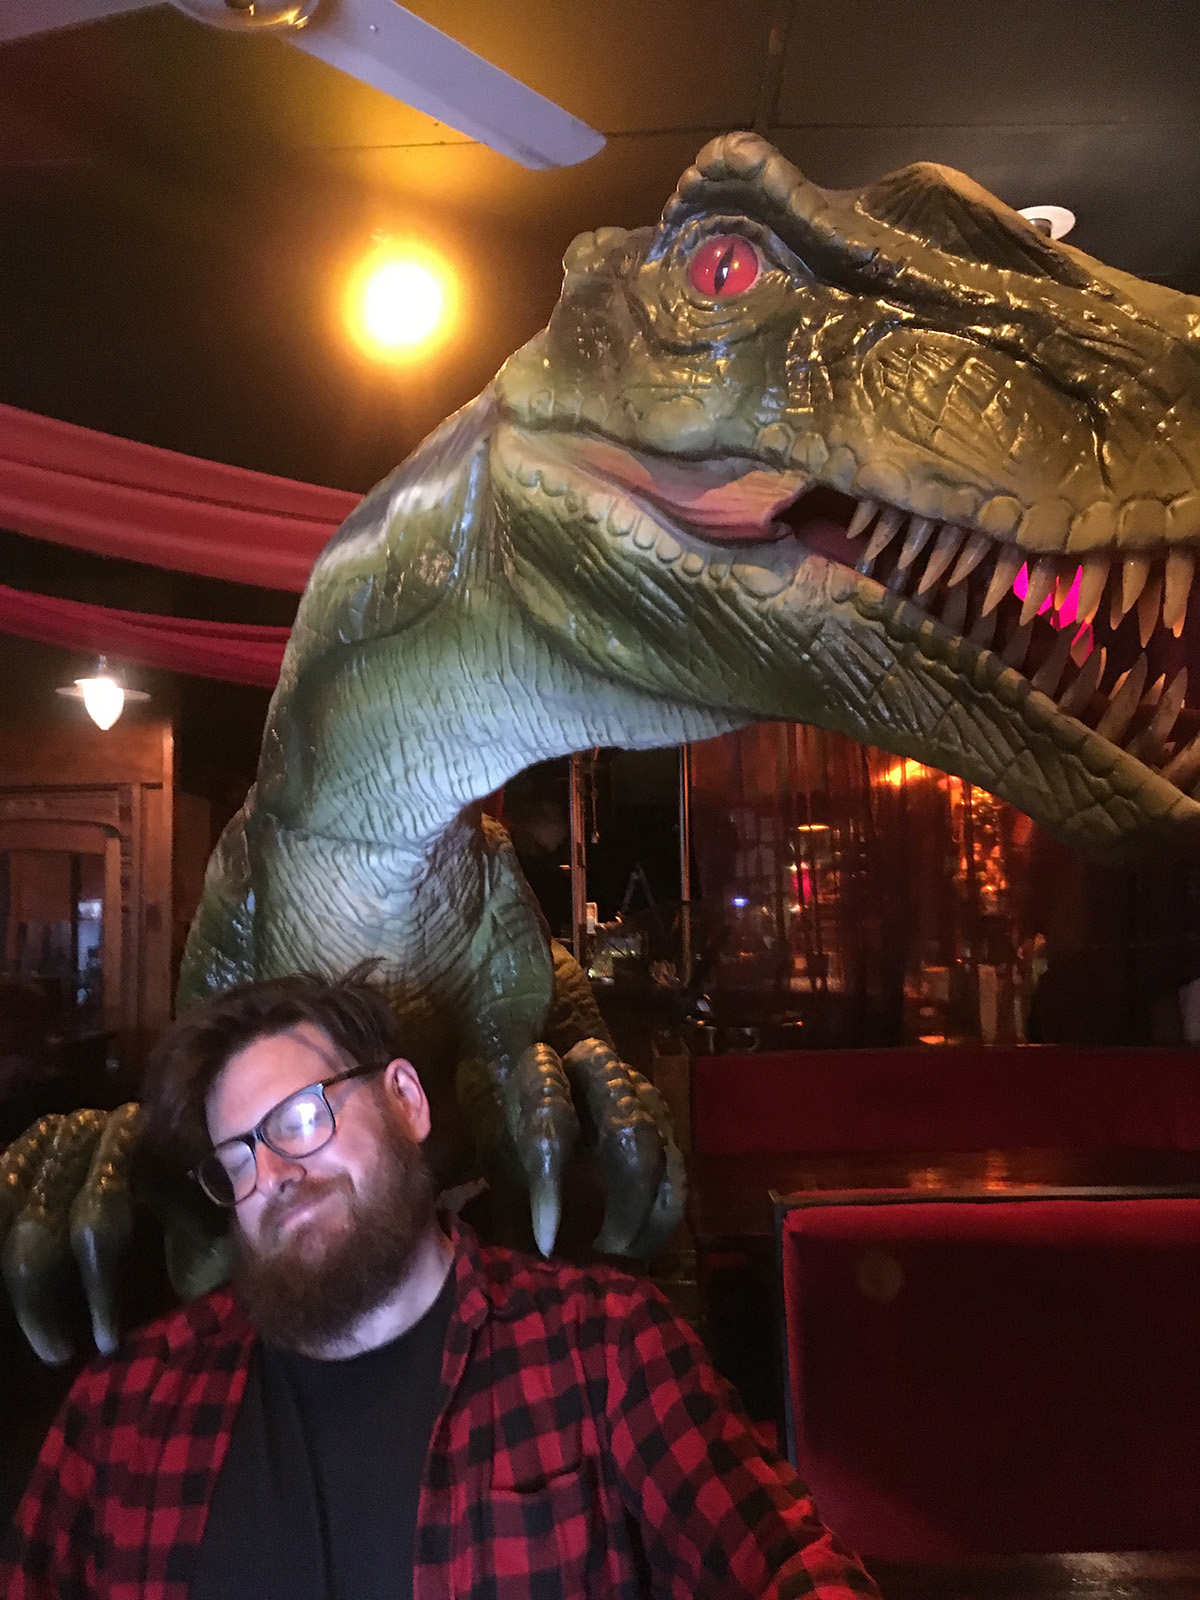 More fun with a dinosaur.